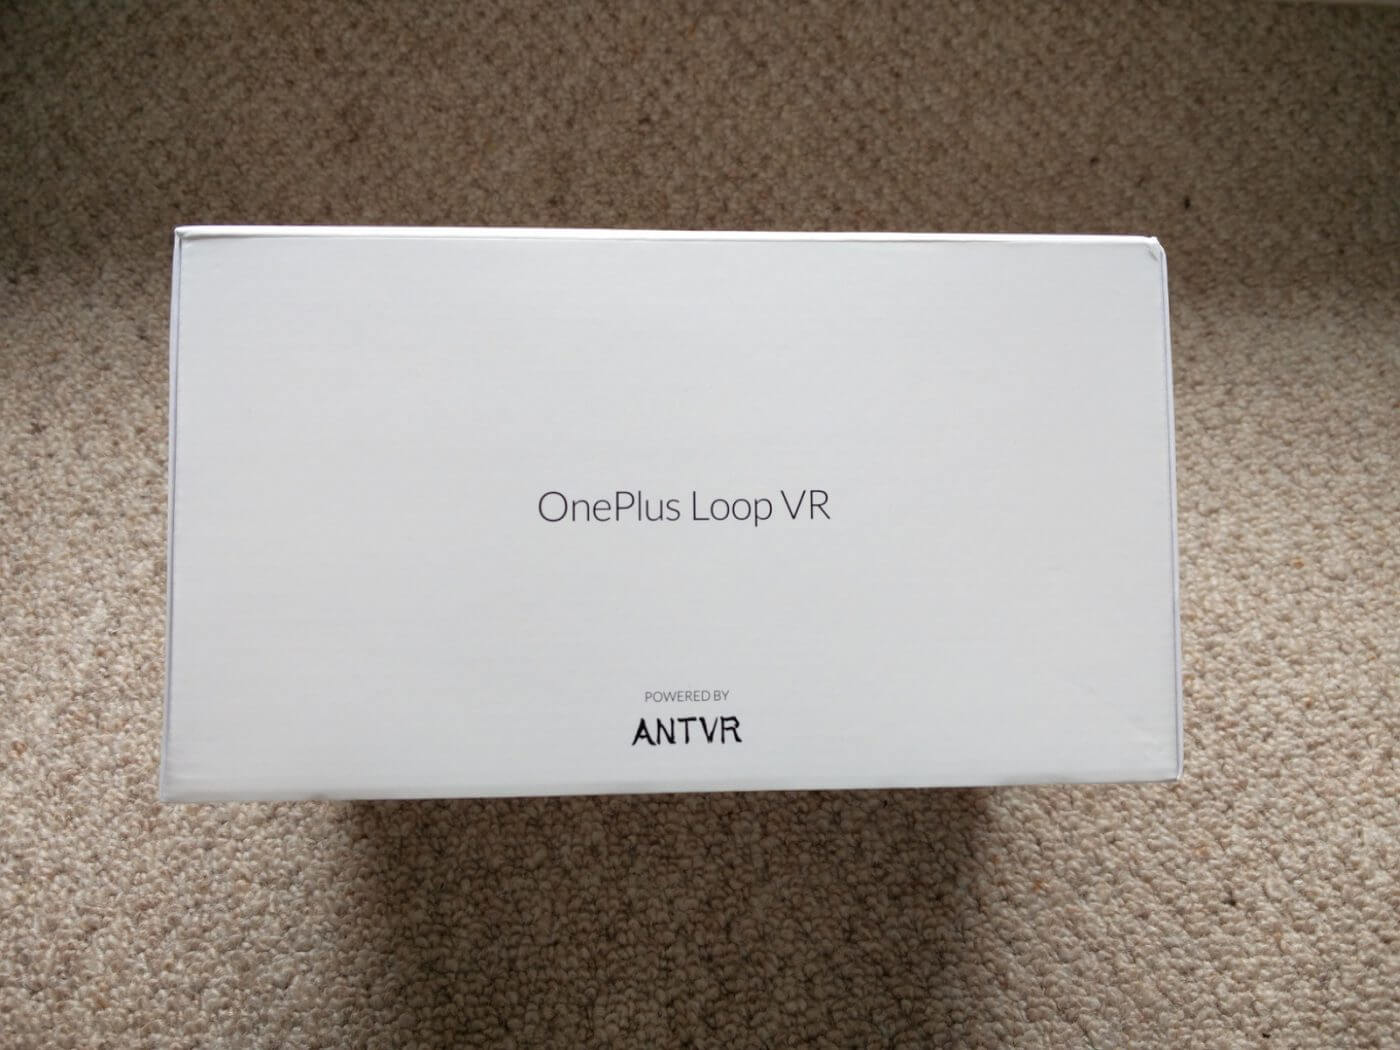 OnePlus Loop VR in box